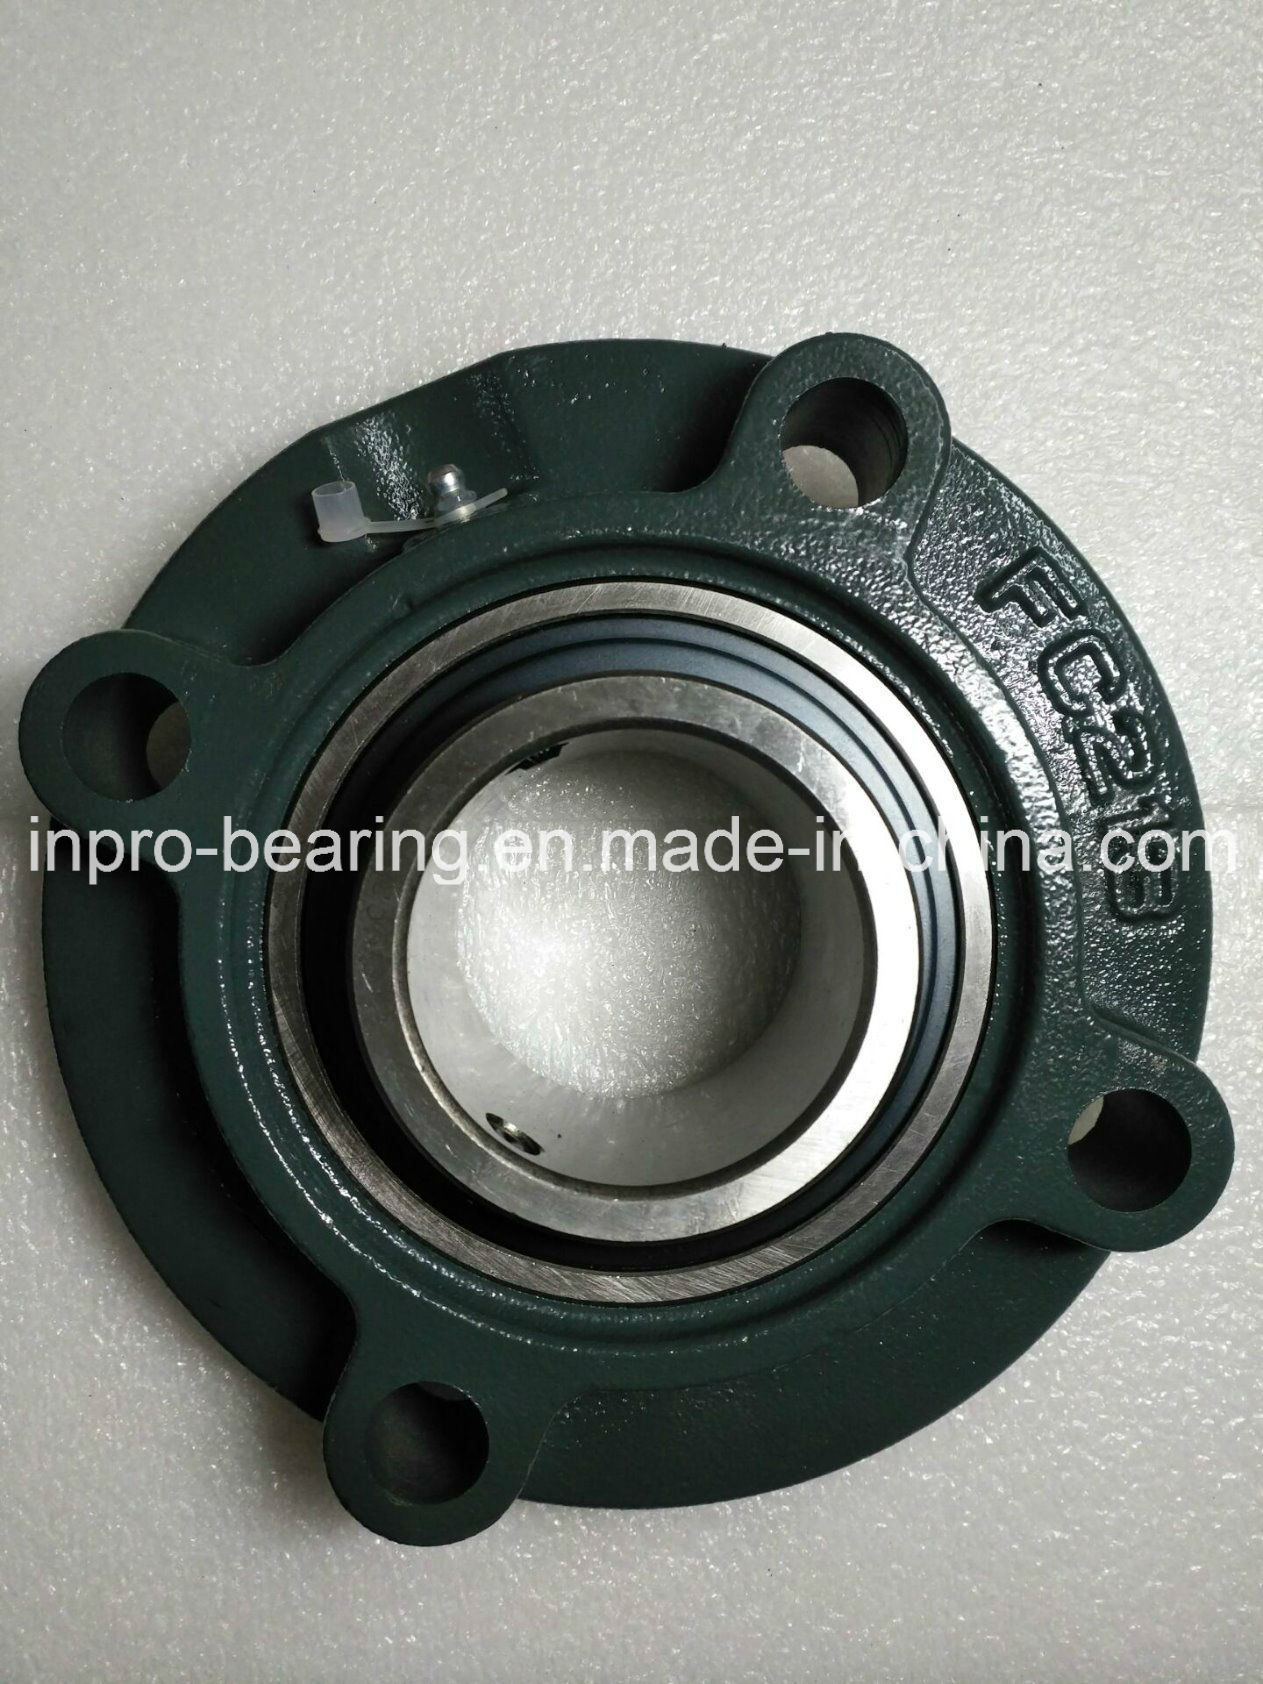 Flange Cartridge Units Cast Iron Stainless Steel Ucfc205-16